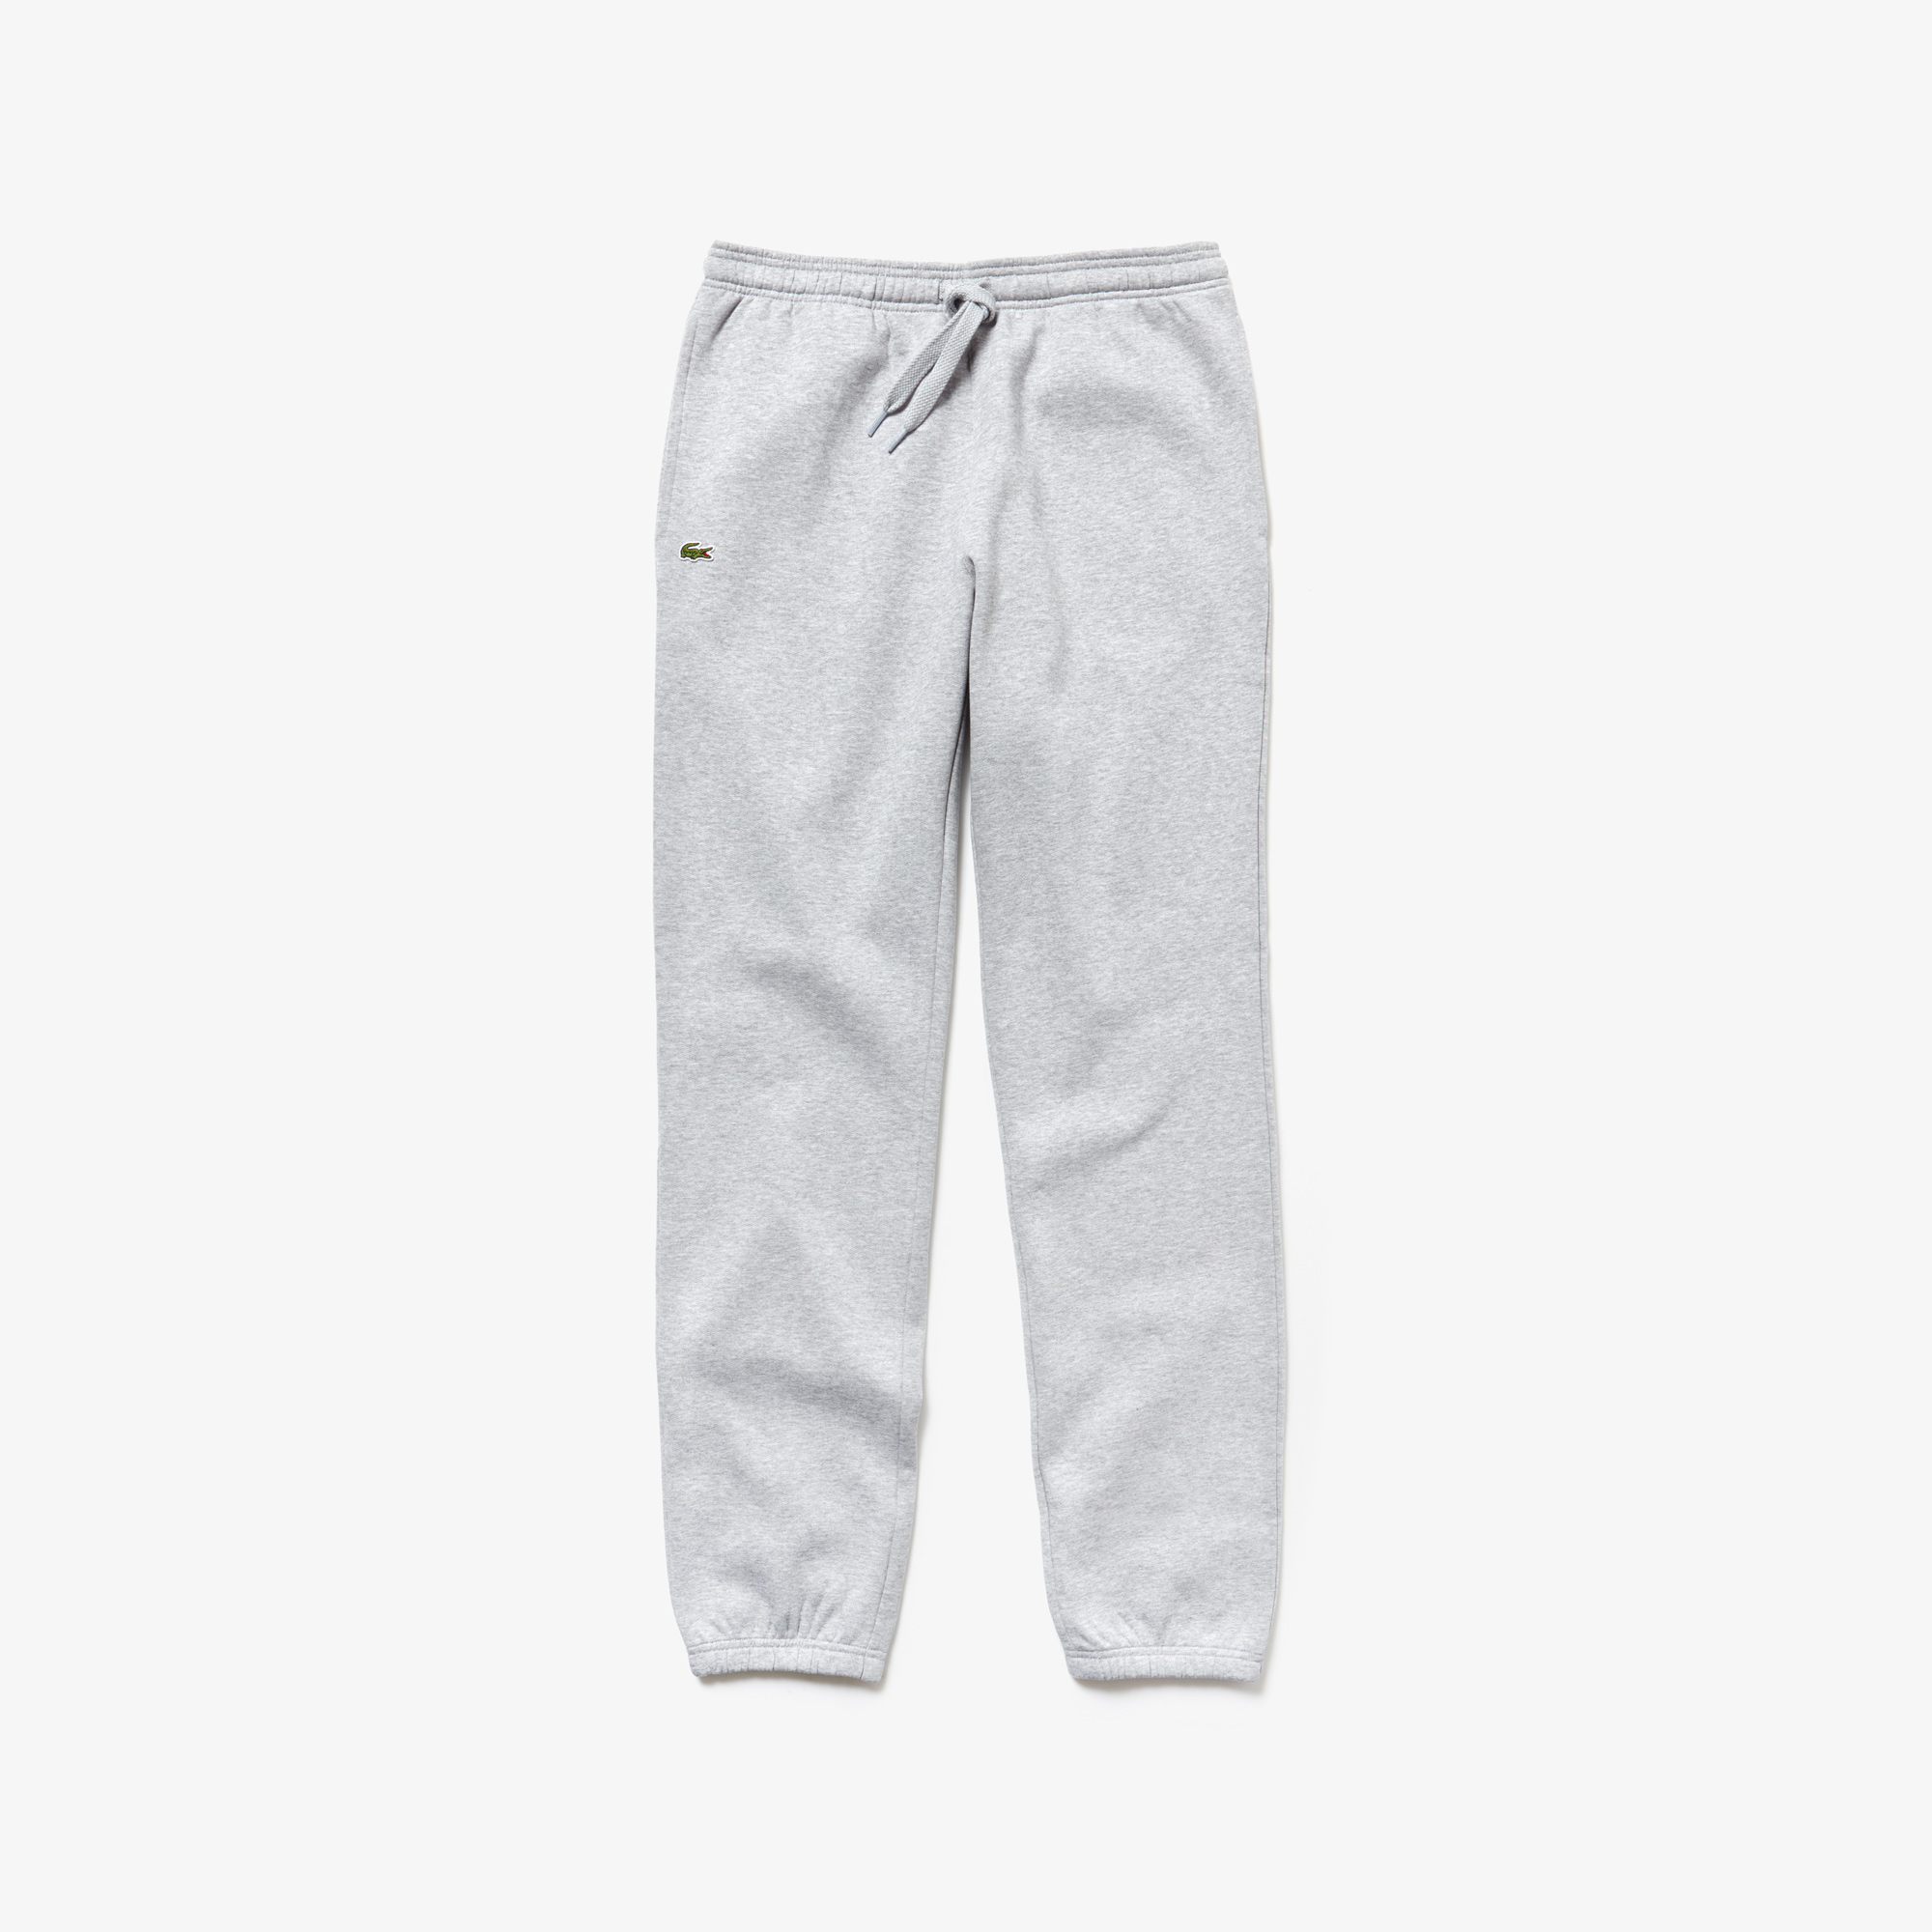 Lacoste Sport Tennis trackpants, grey chine, small